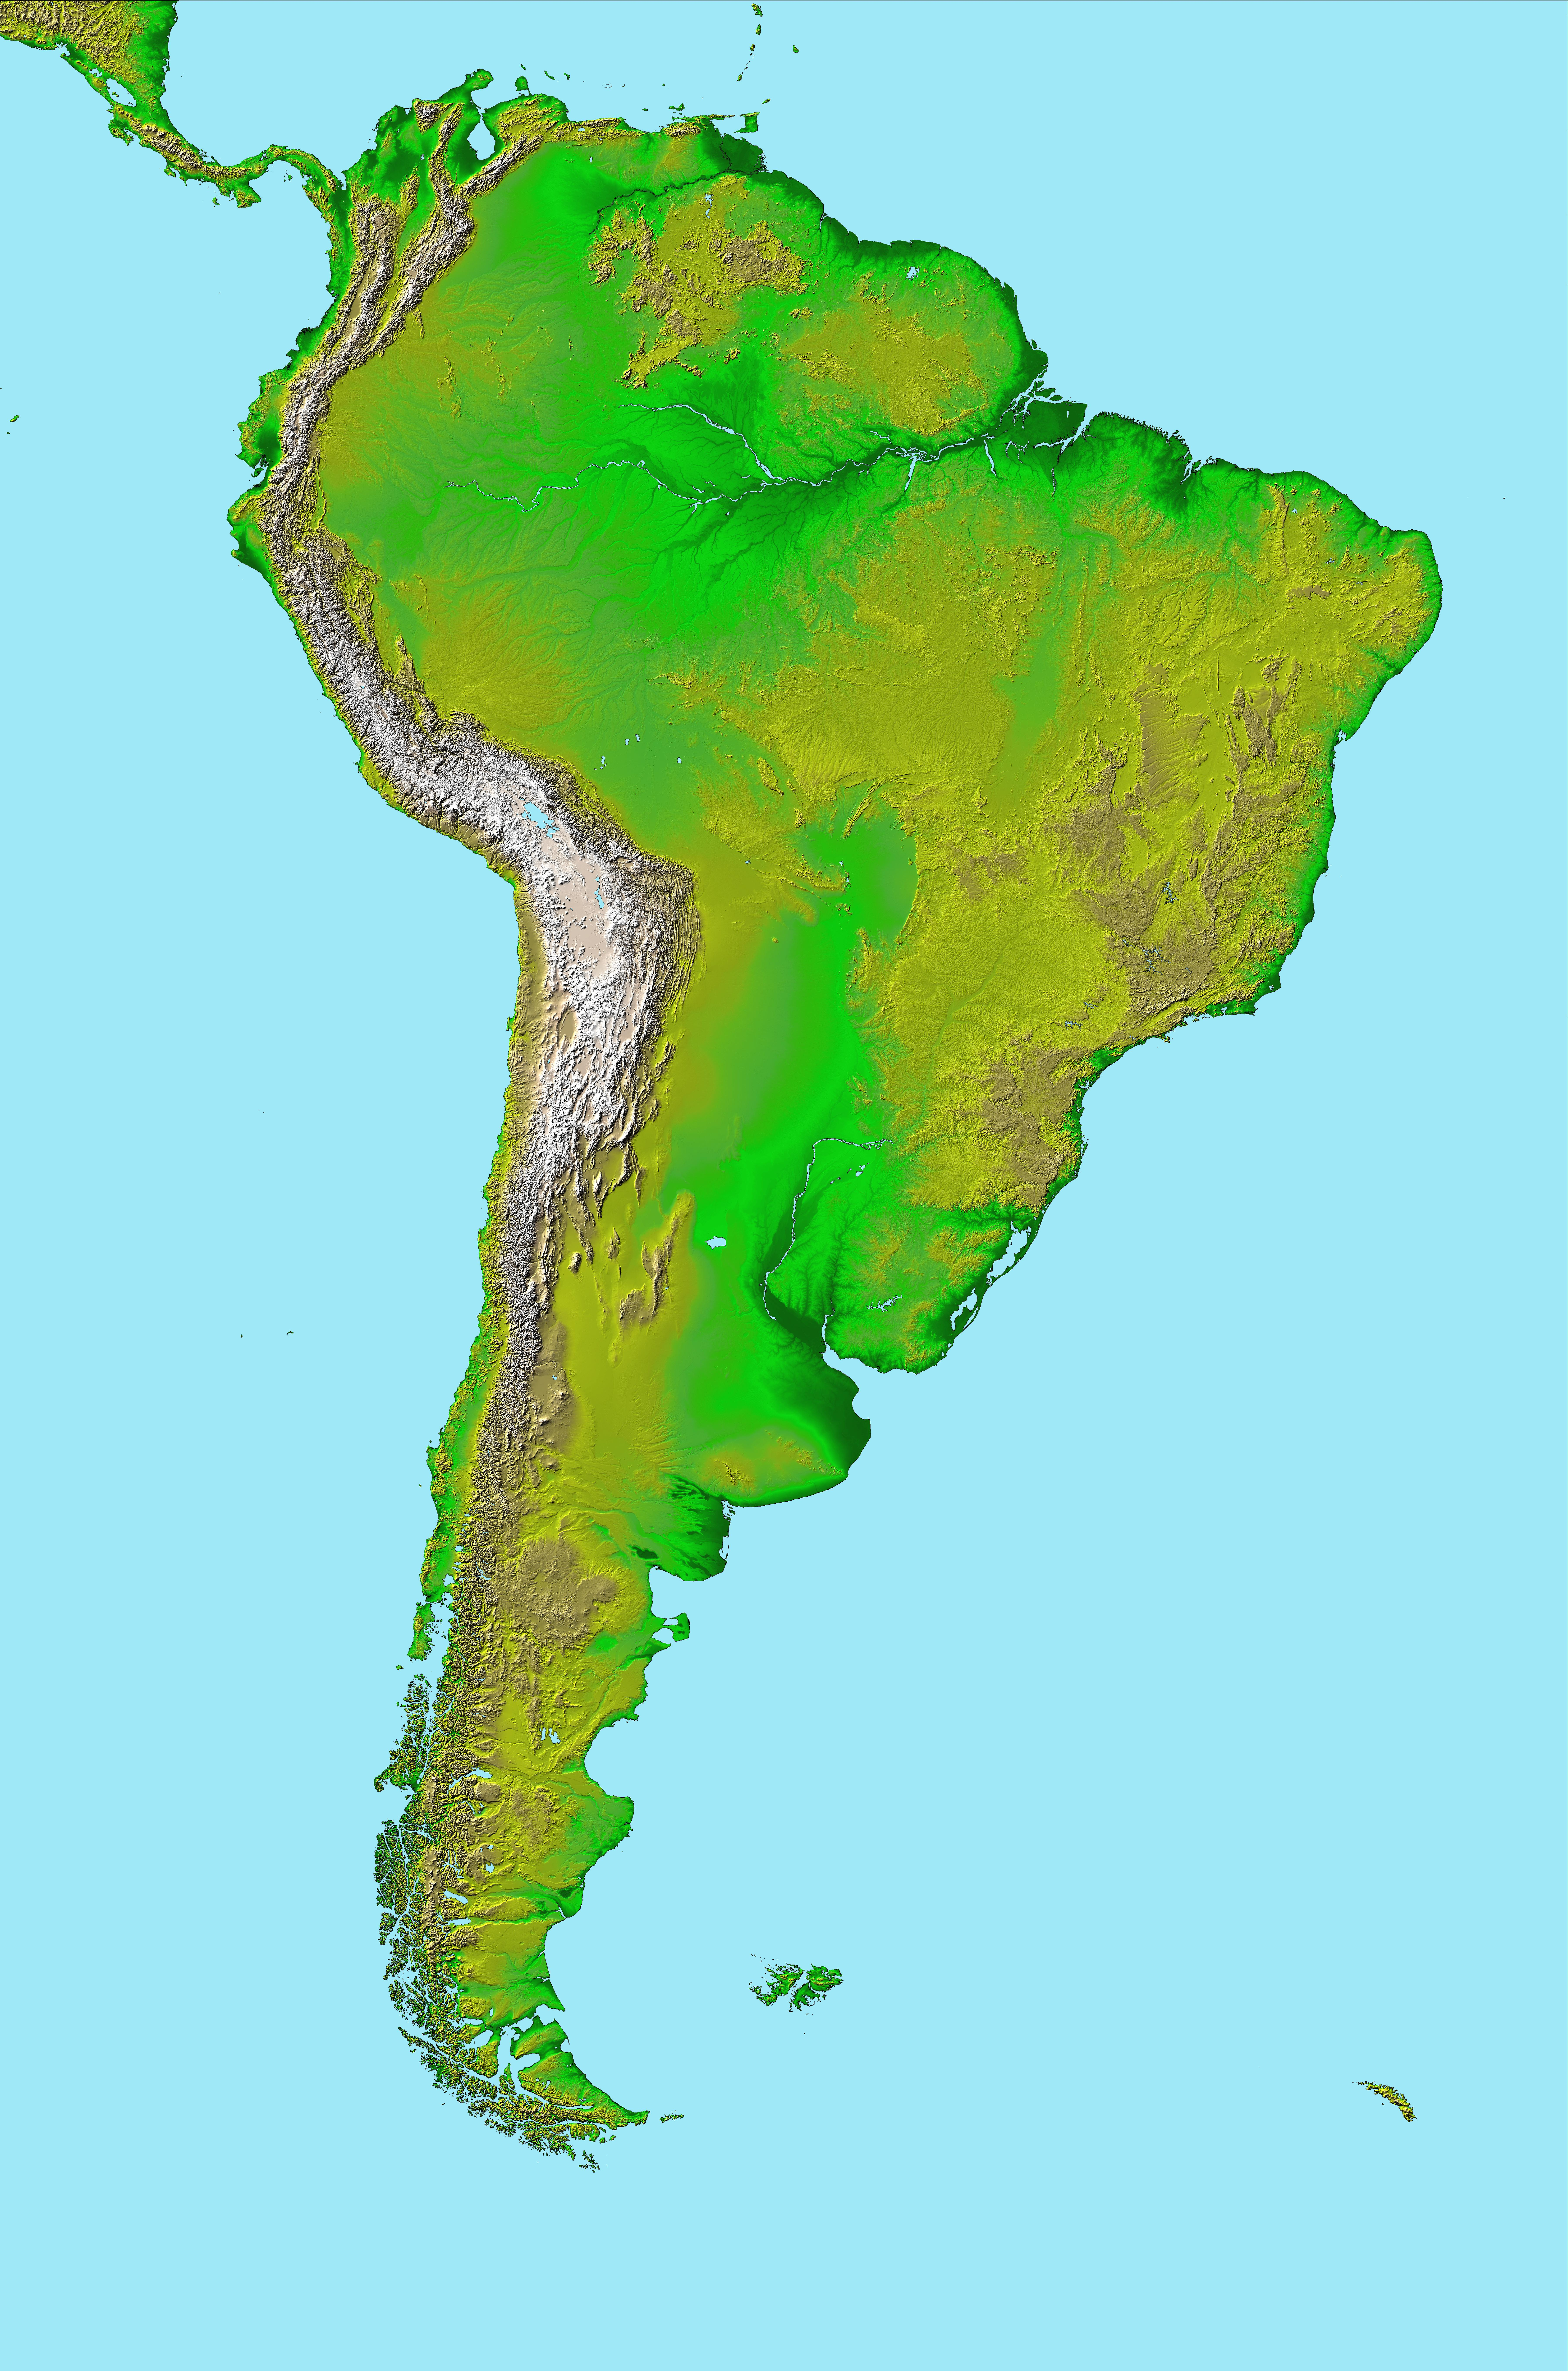 FileTopographic map of South Americajpg Wikimedia Commons